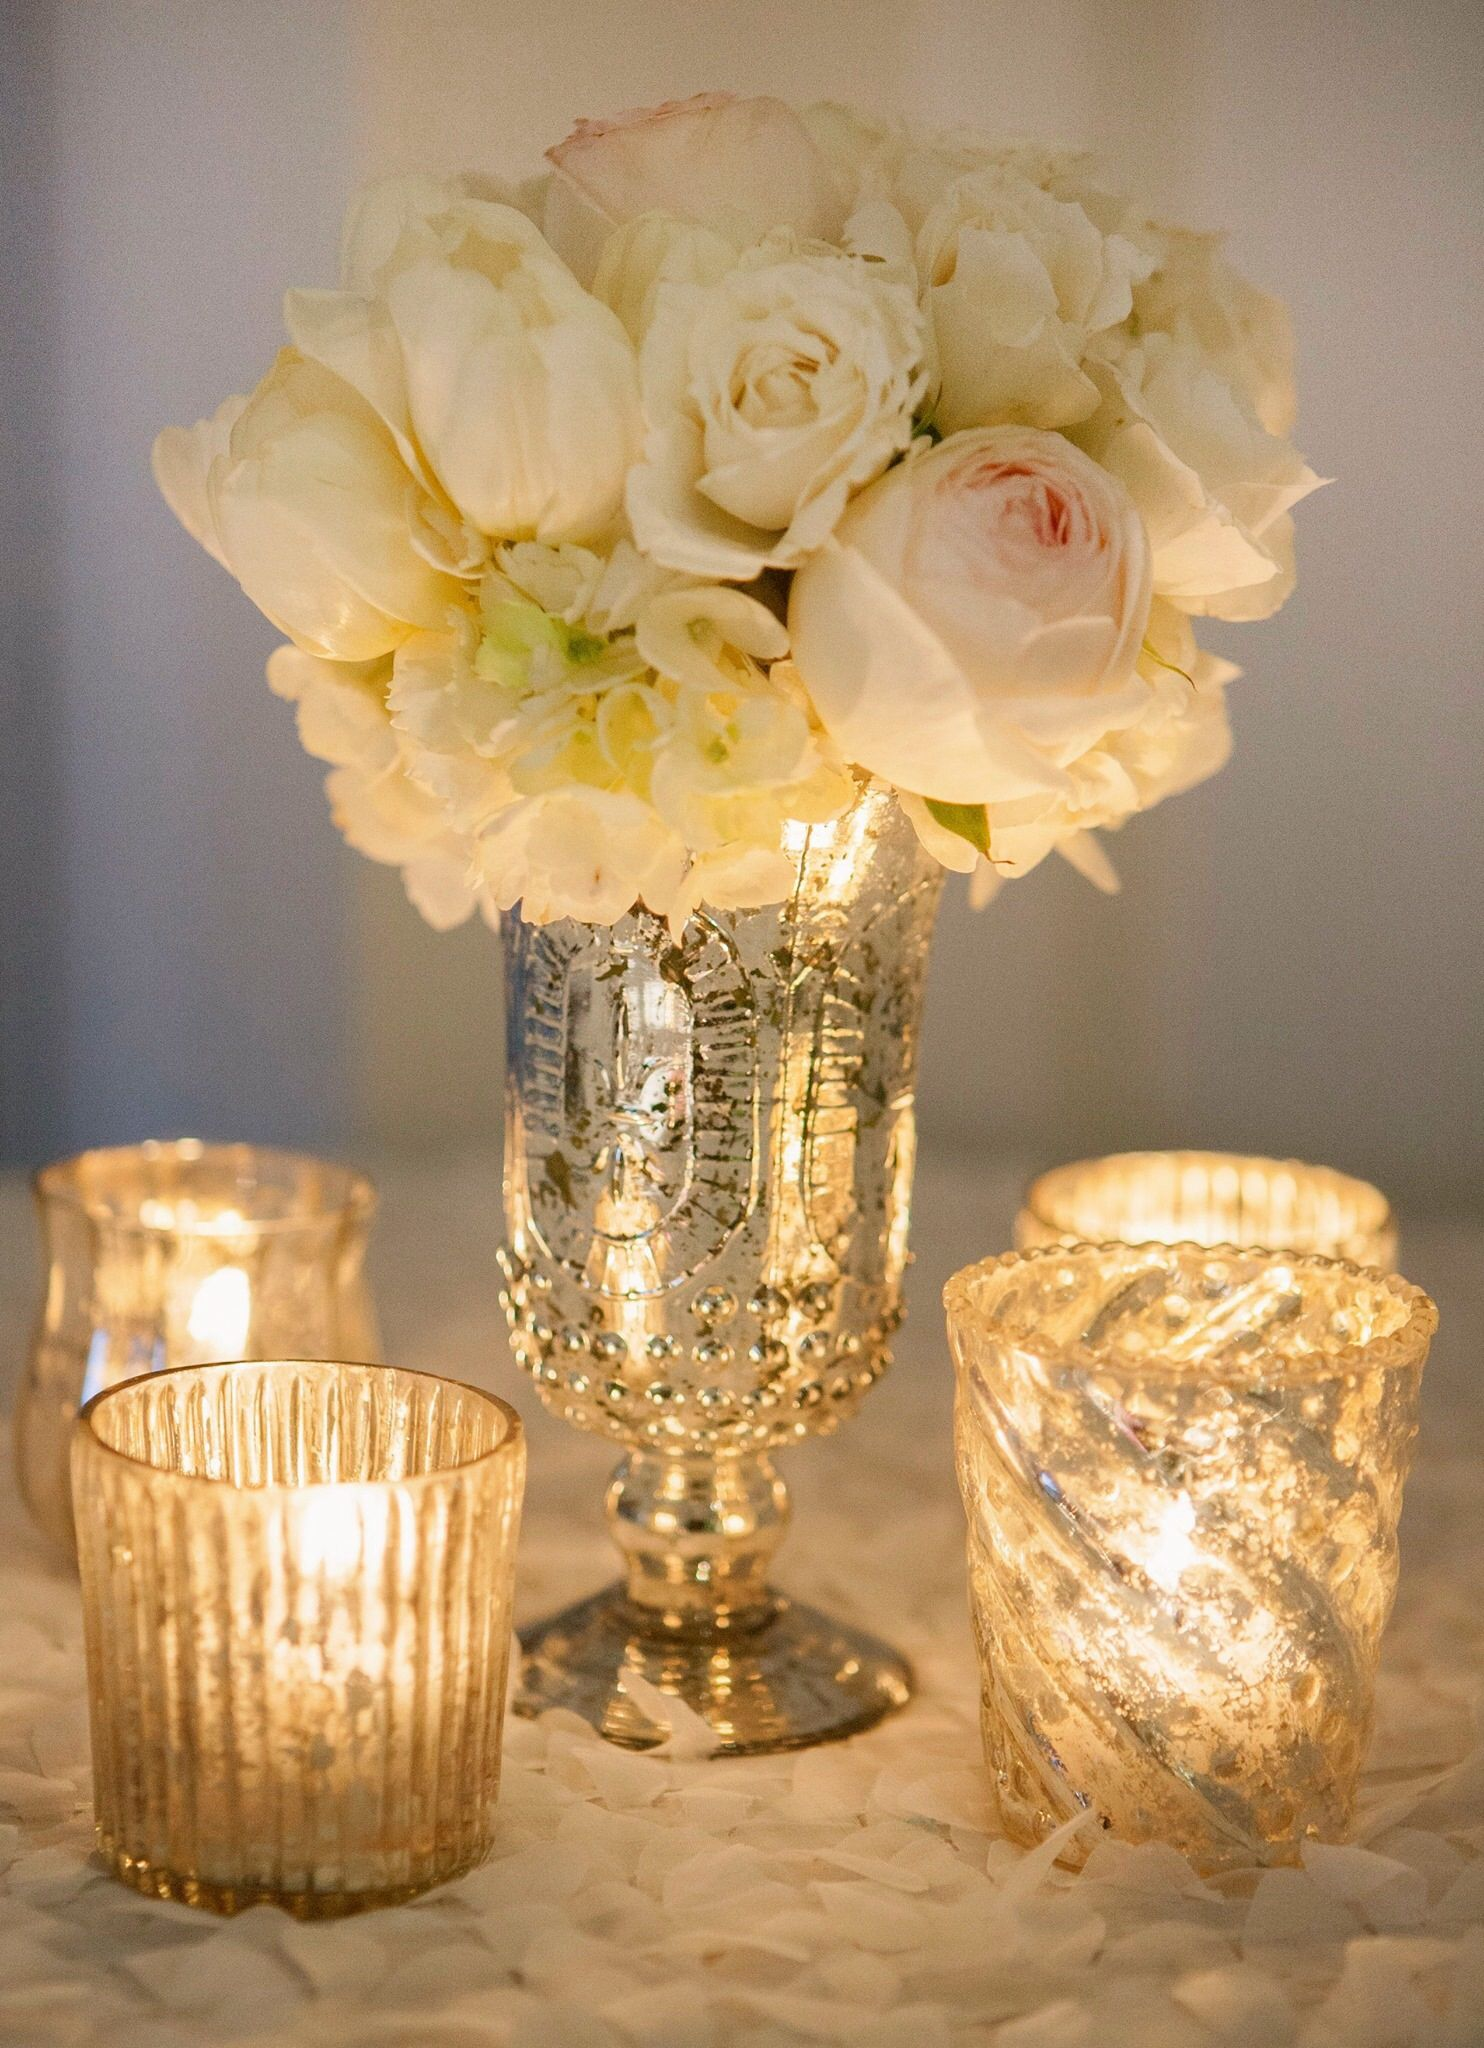 Whimsical Centerpiece With Mismatched And Weathered Texture To Keep